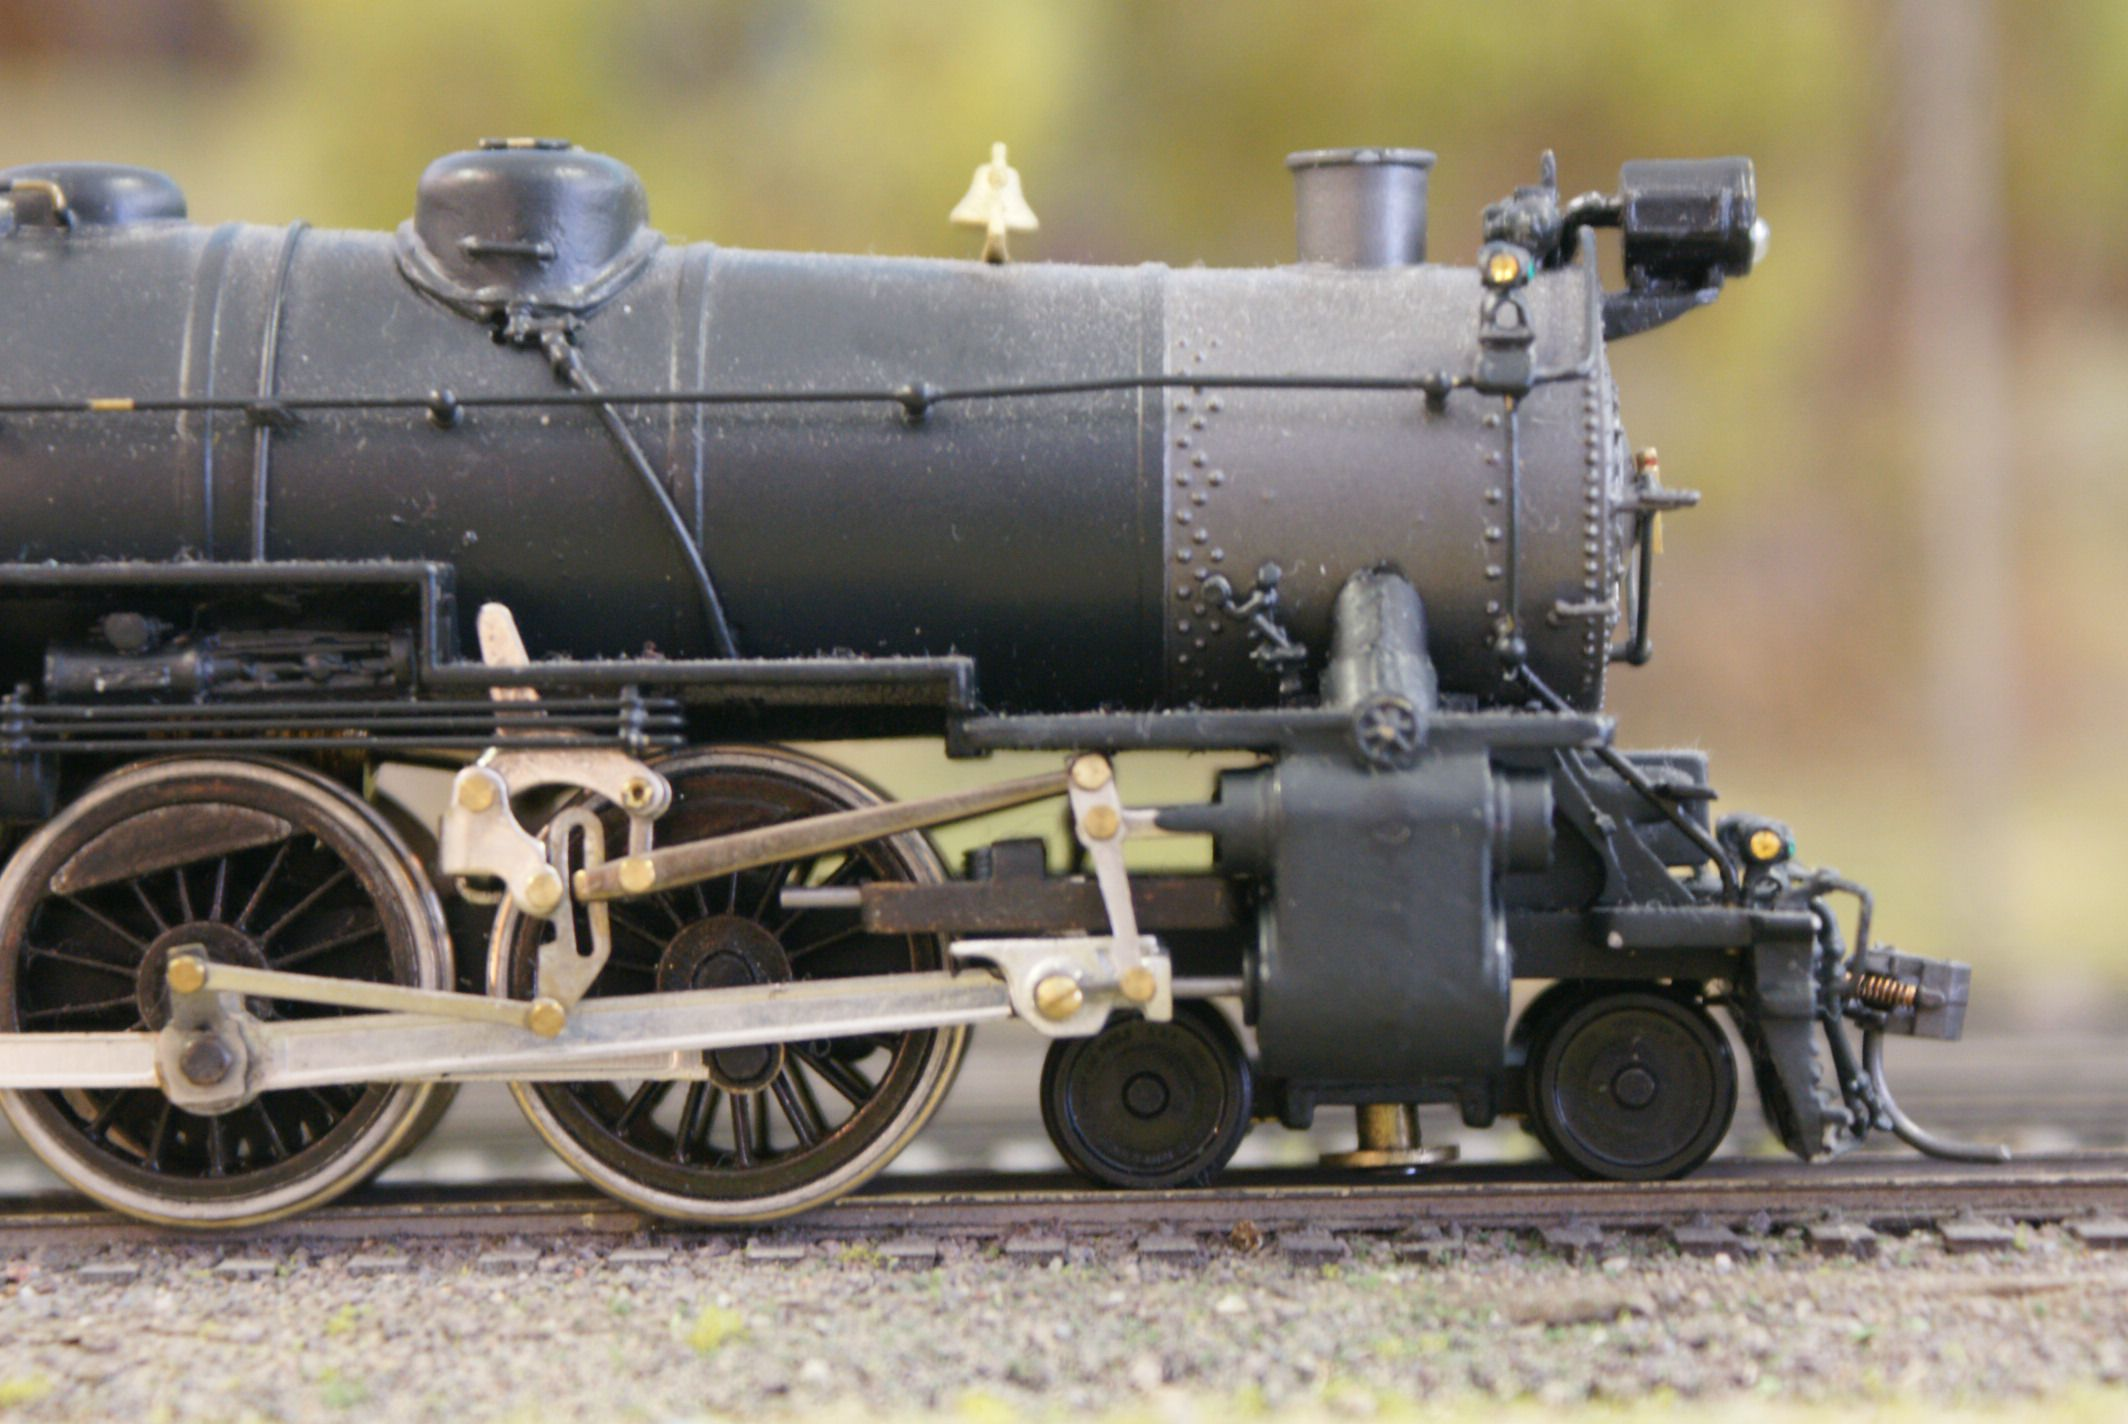 Troubleshooting and Fixing Model Trains That Won't Run